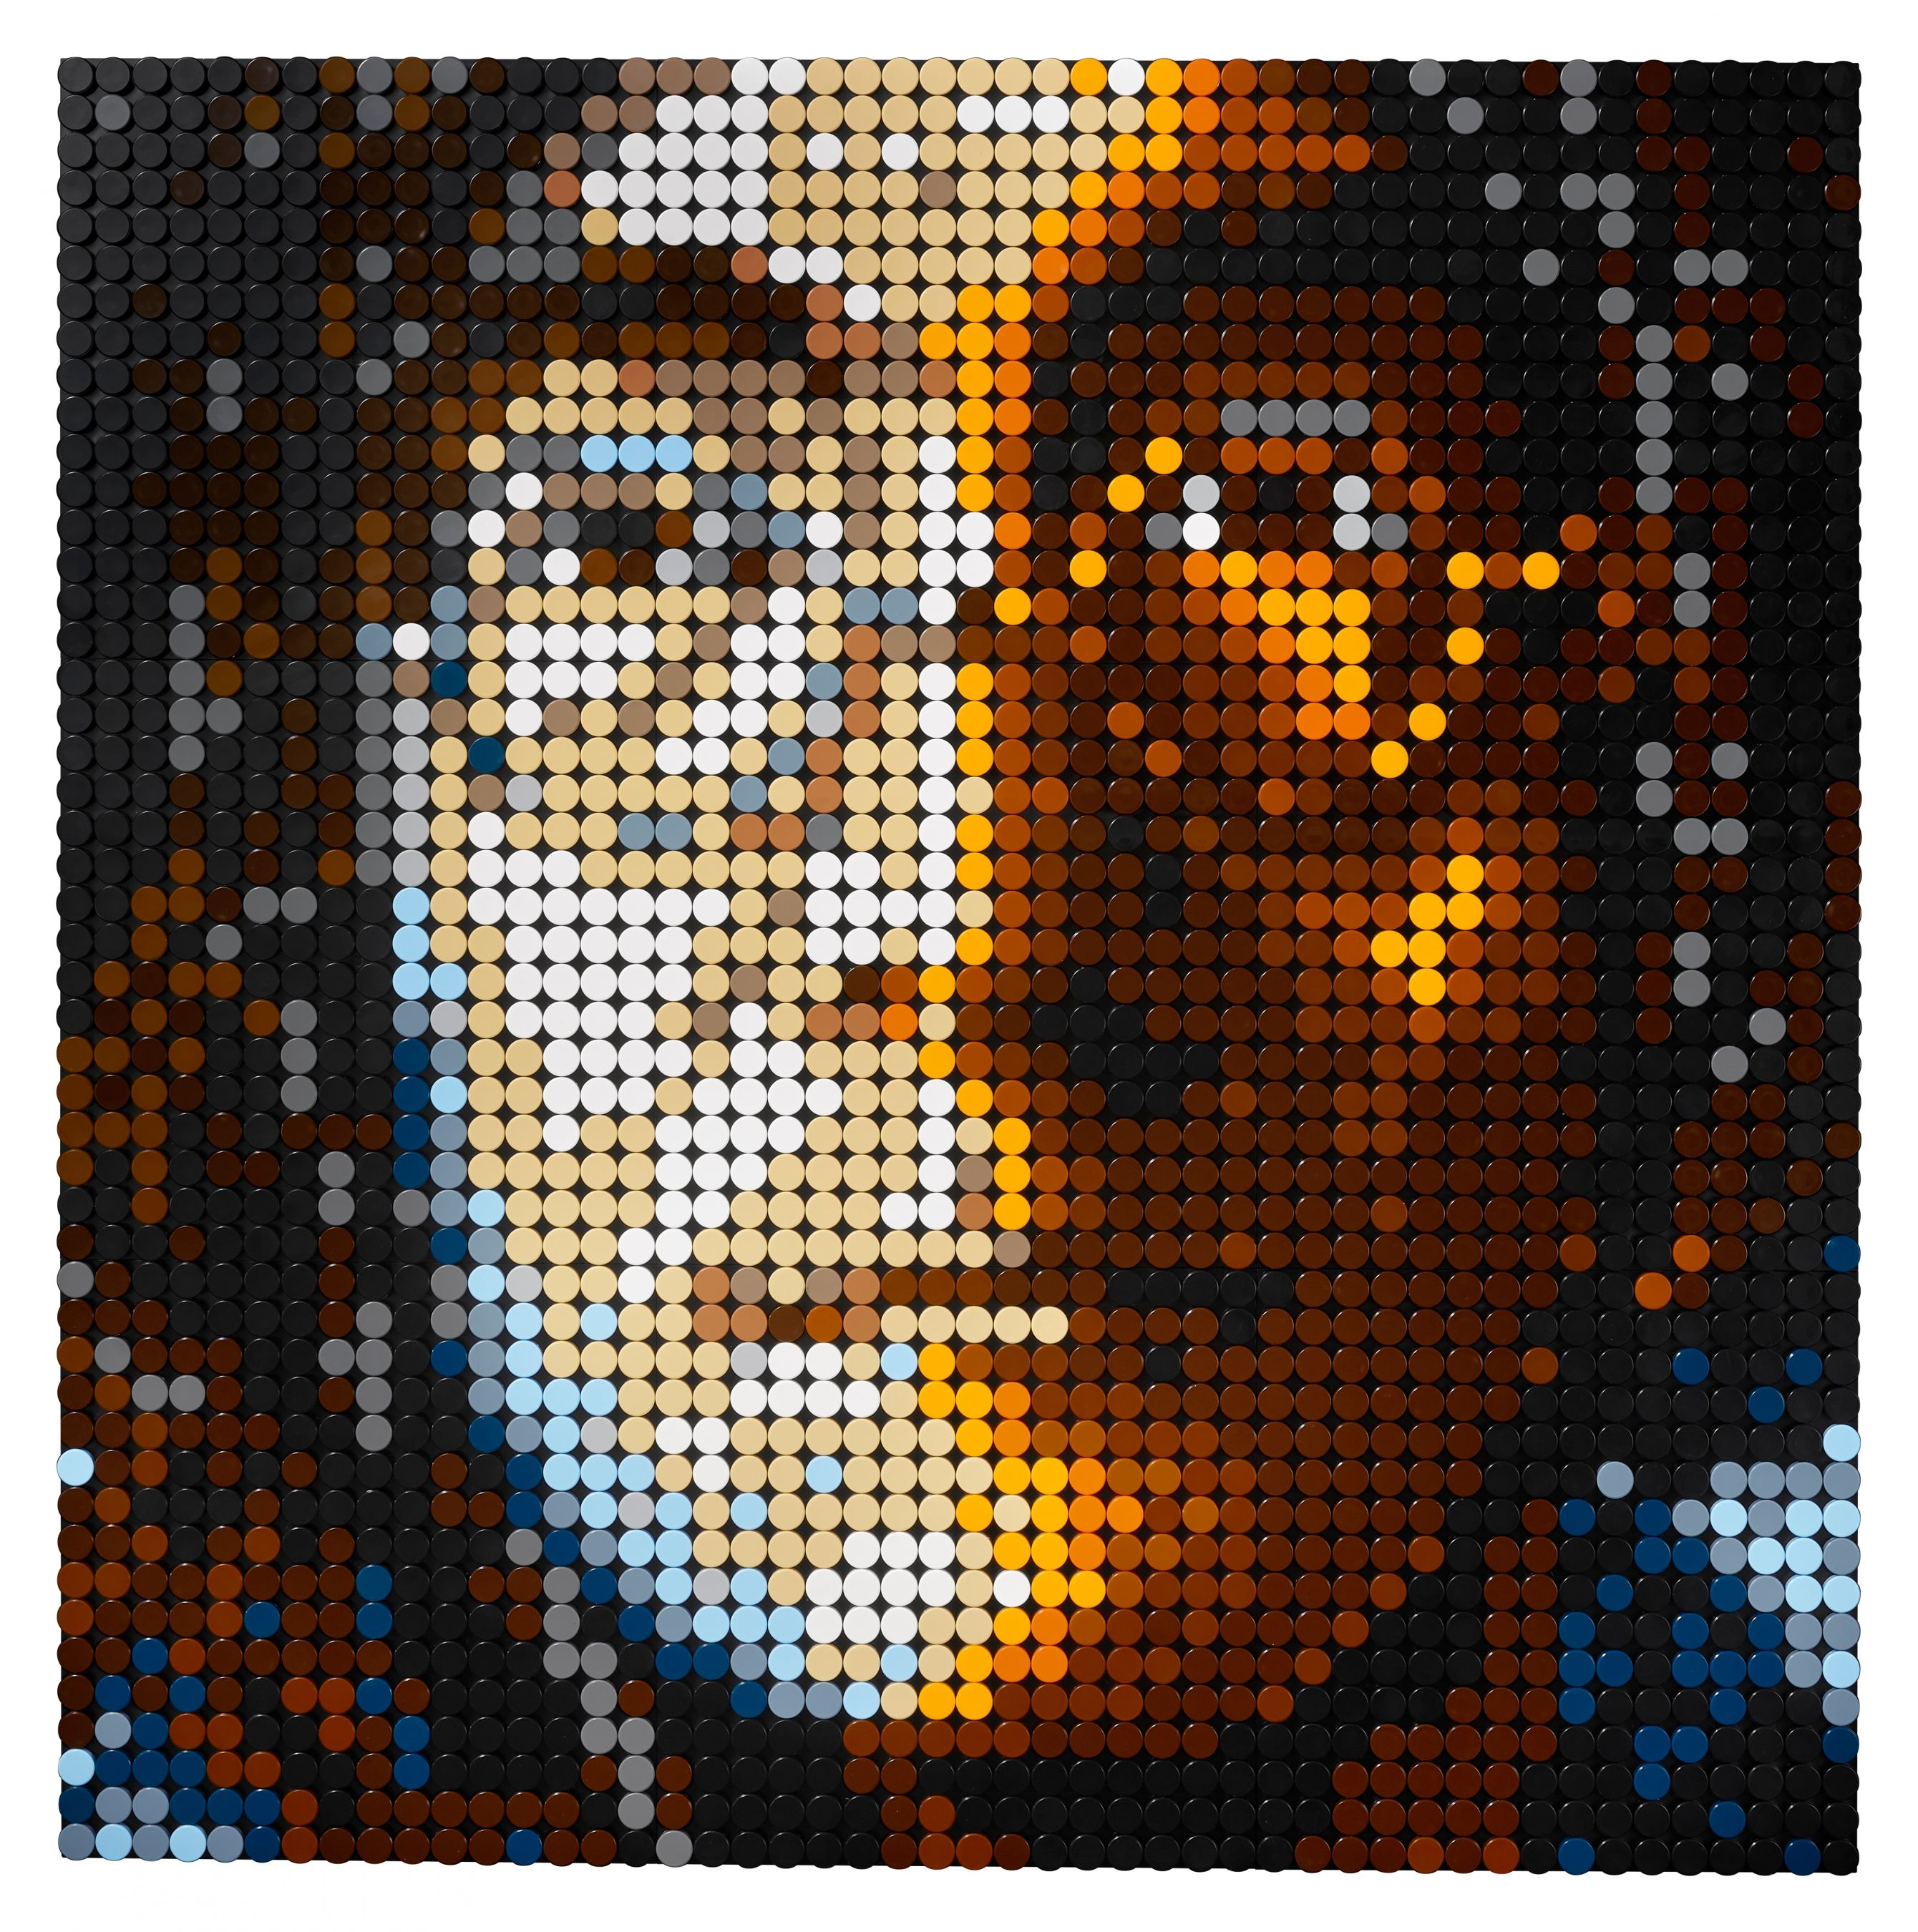 LEGO Art 31198 The Beatles LEGO_31198_alt2.jpg